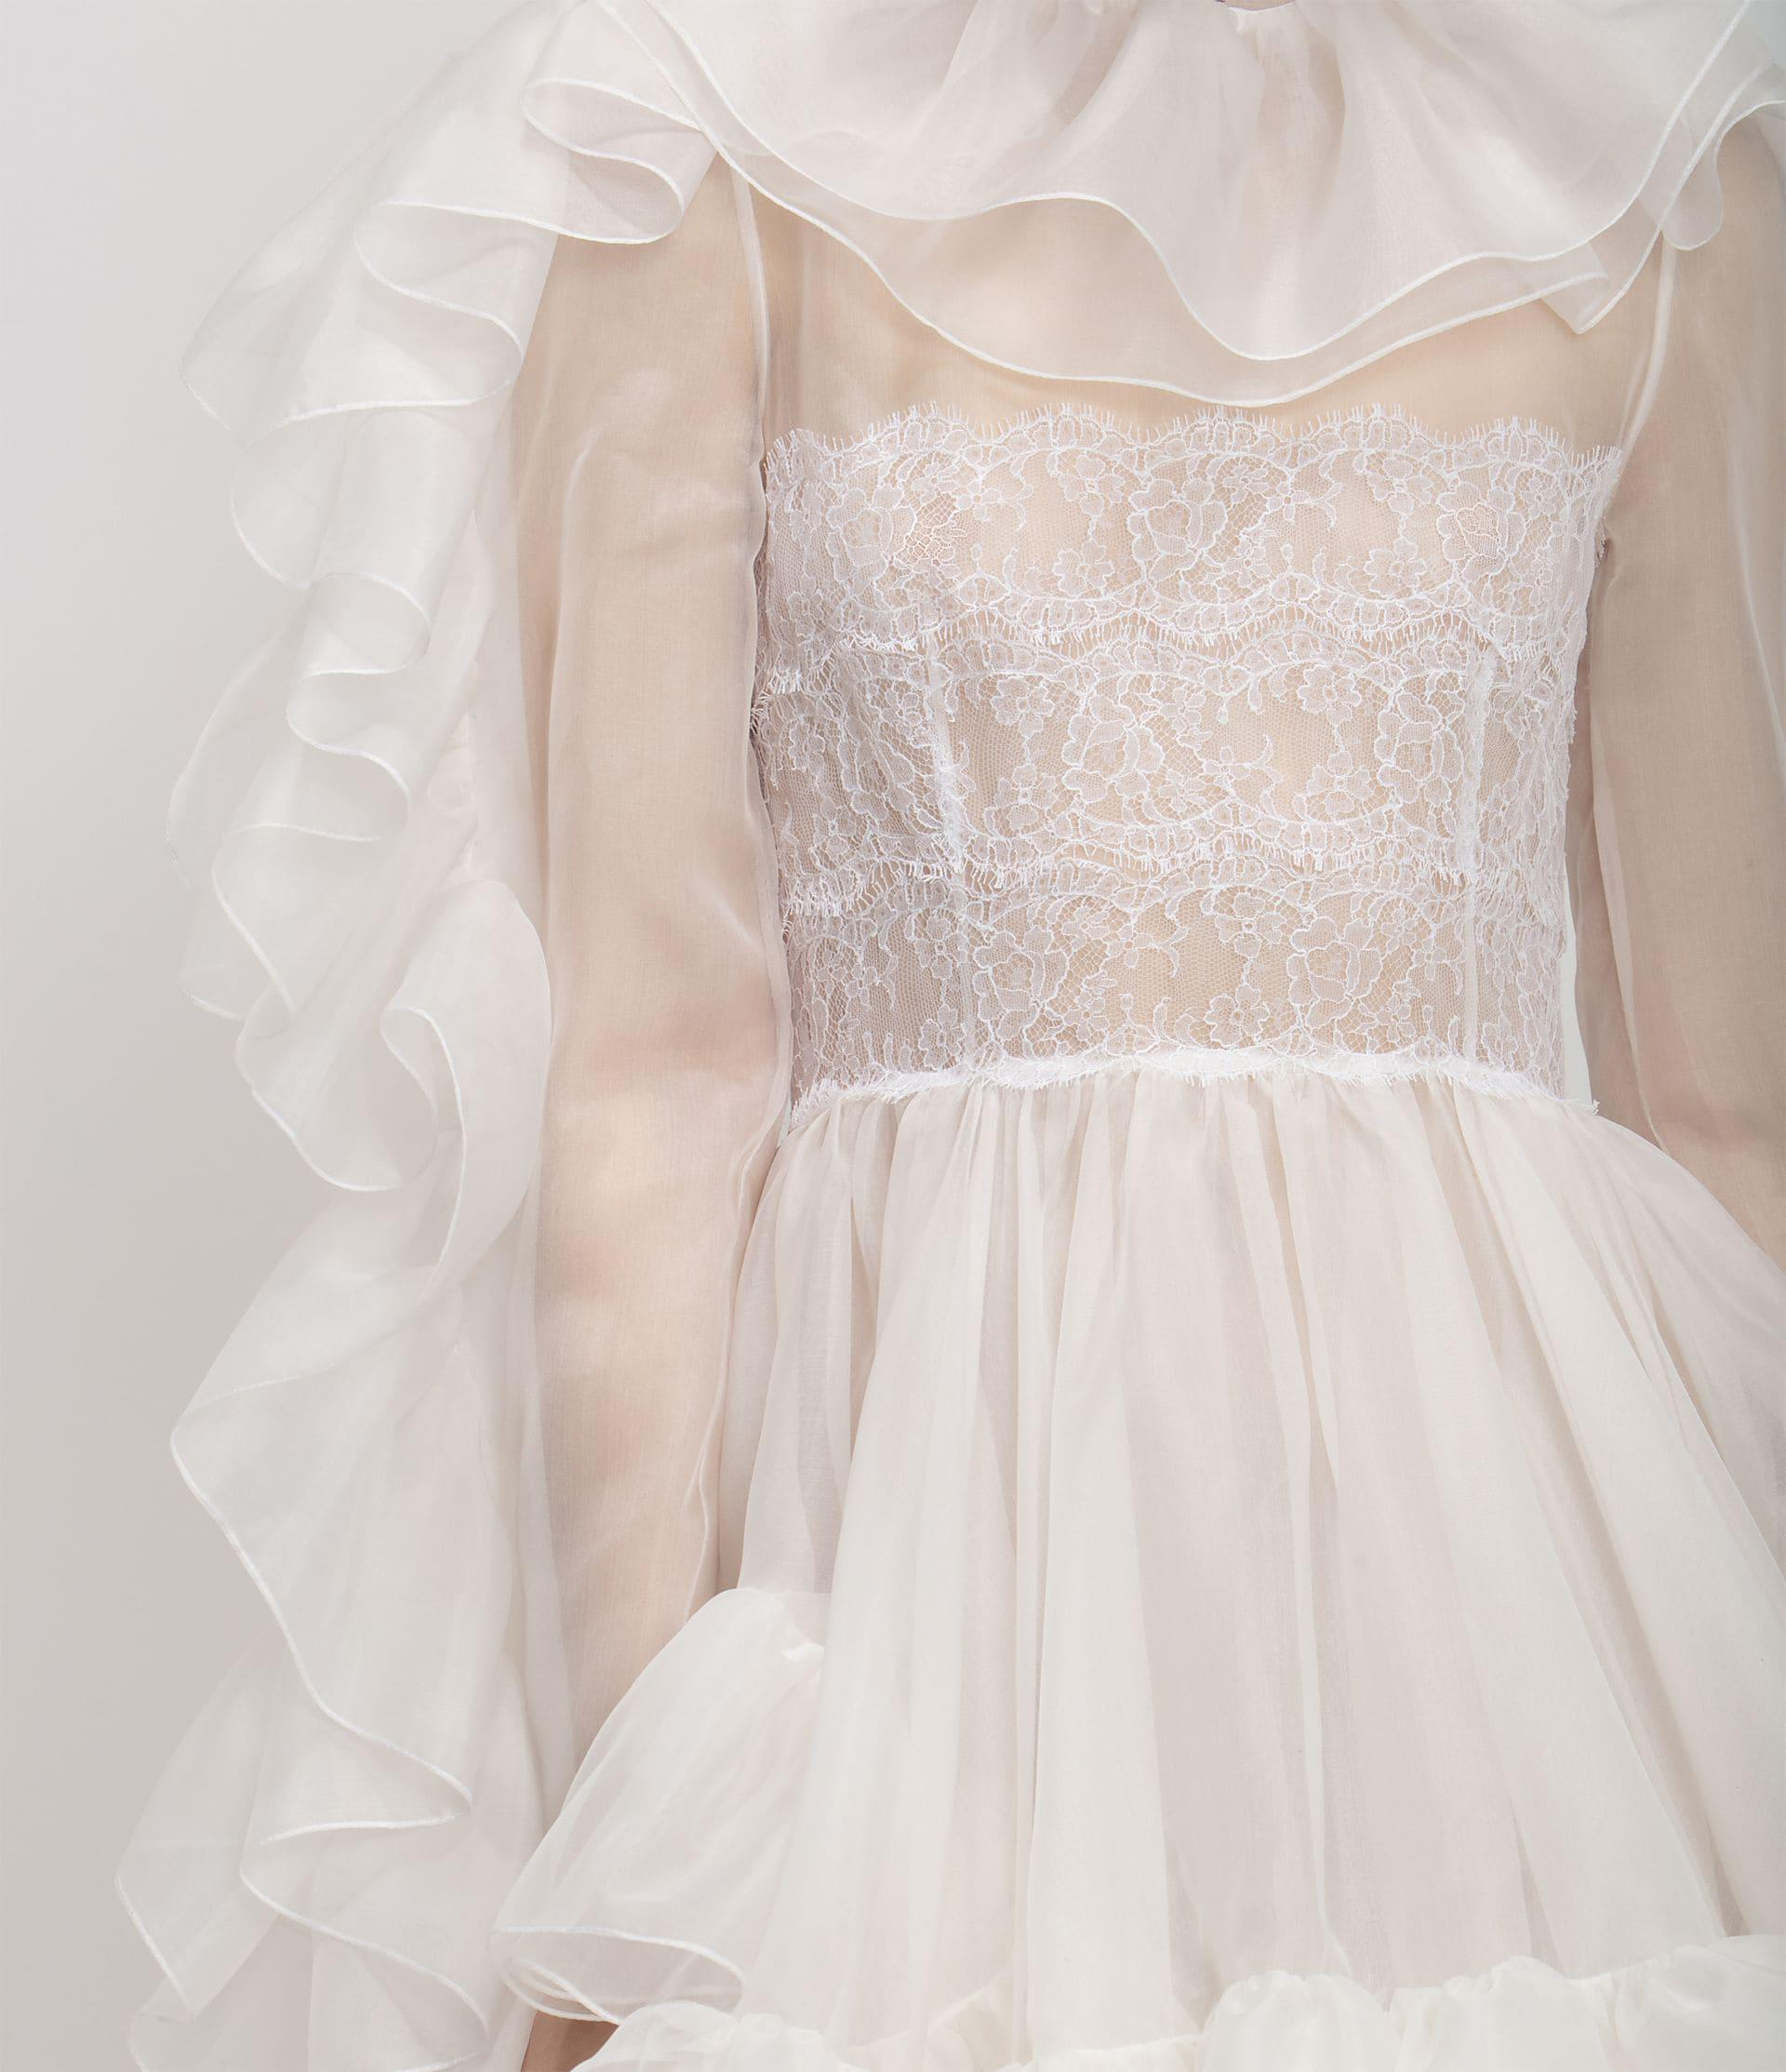 Christopher Kane Bridal: The Organza Frill Gown 3